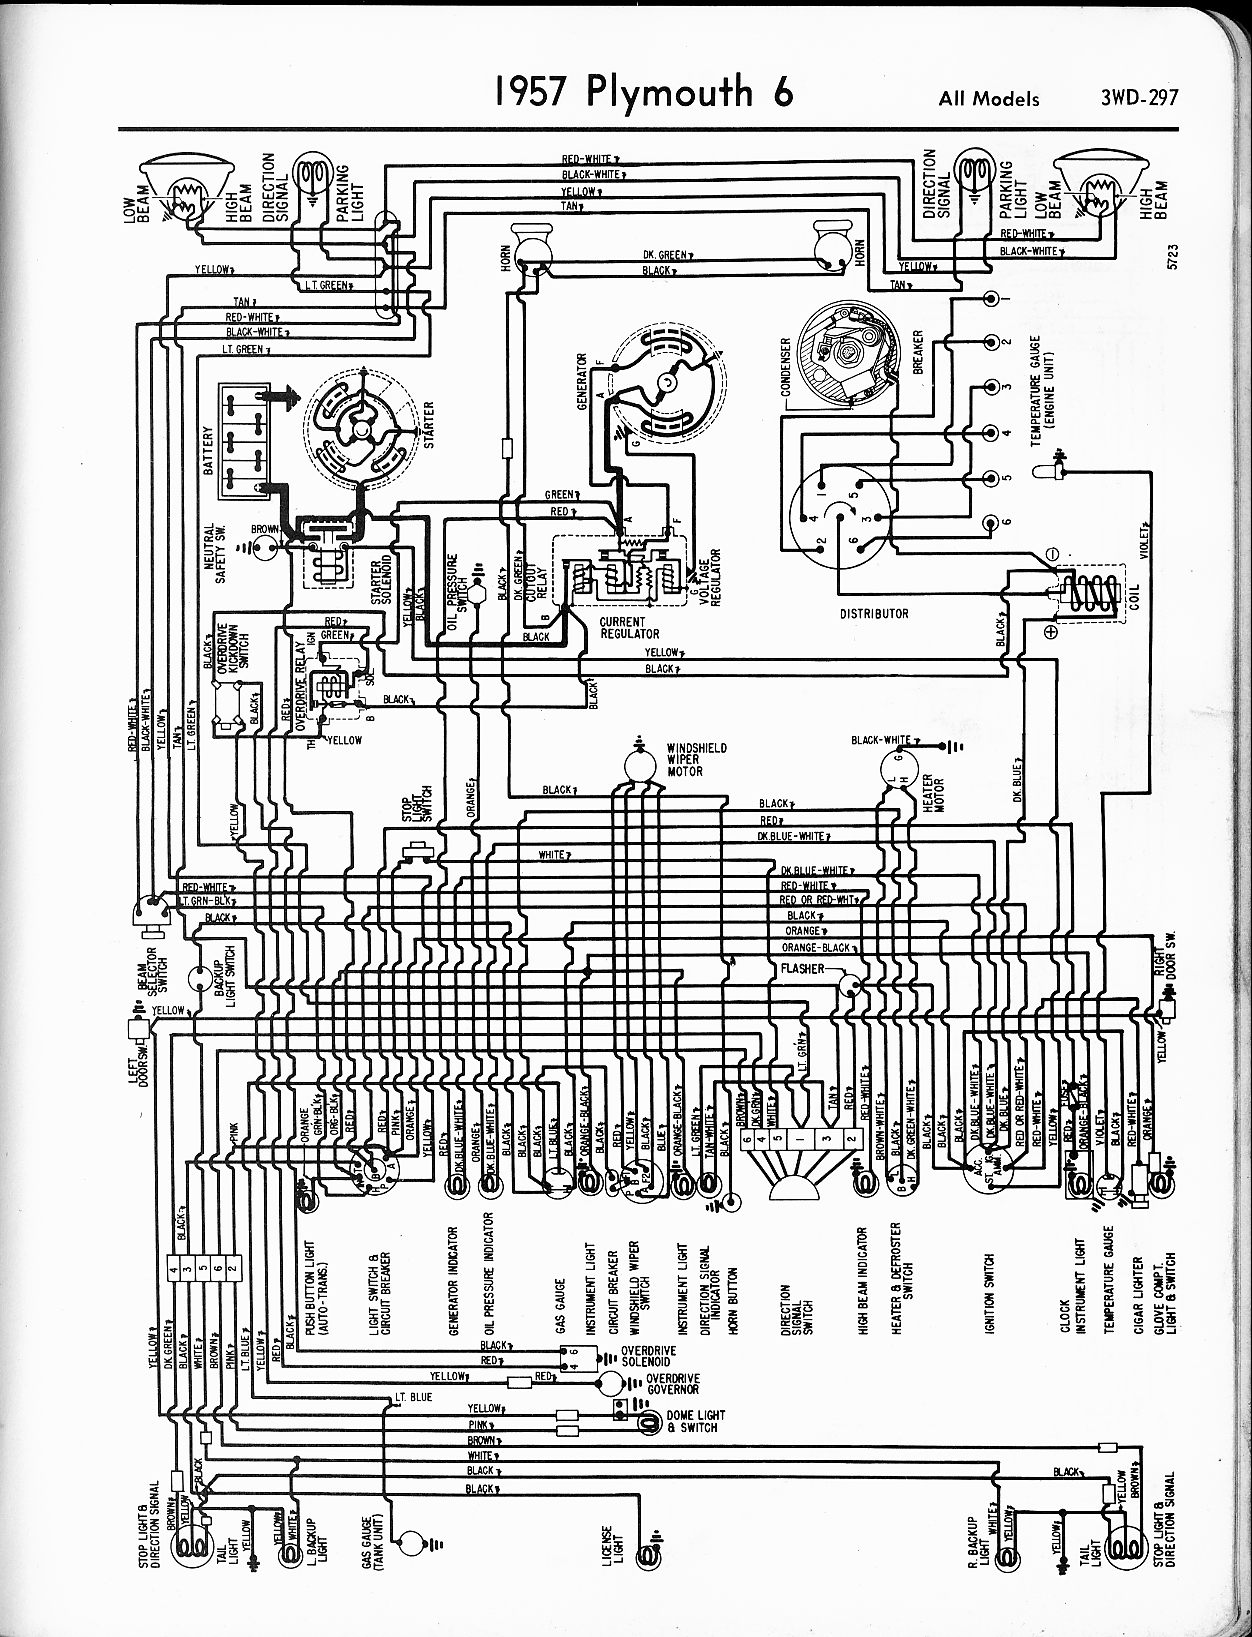 plymouth valiant wiring diagram wiring diagrams 1957 plymouth 6 plymouth valiant wiring diagram